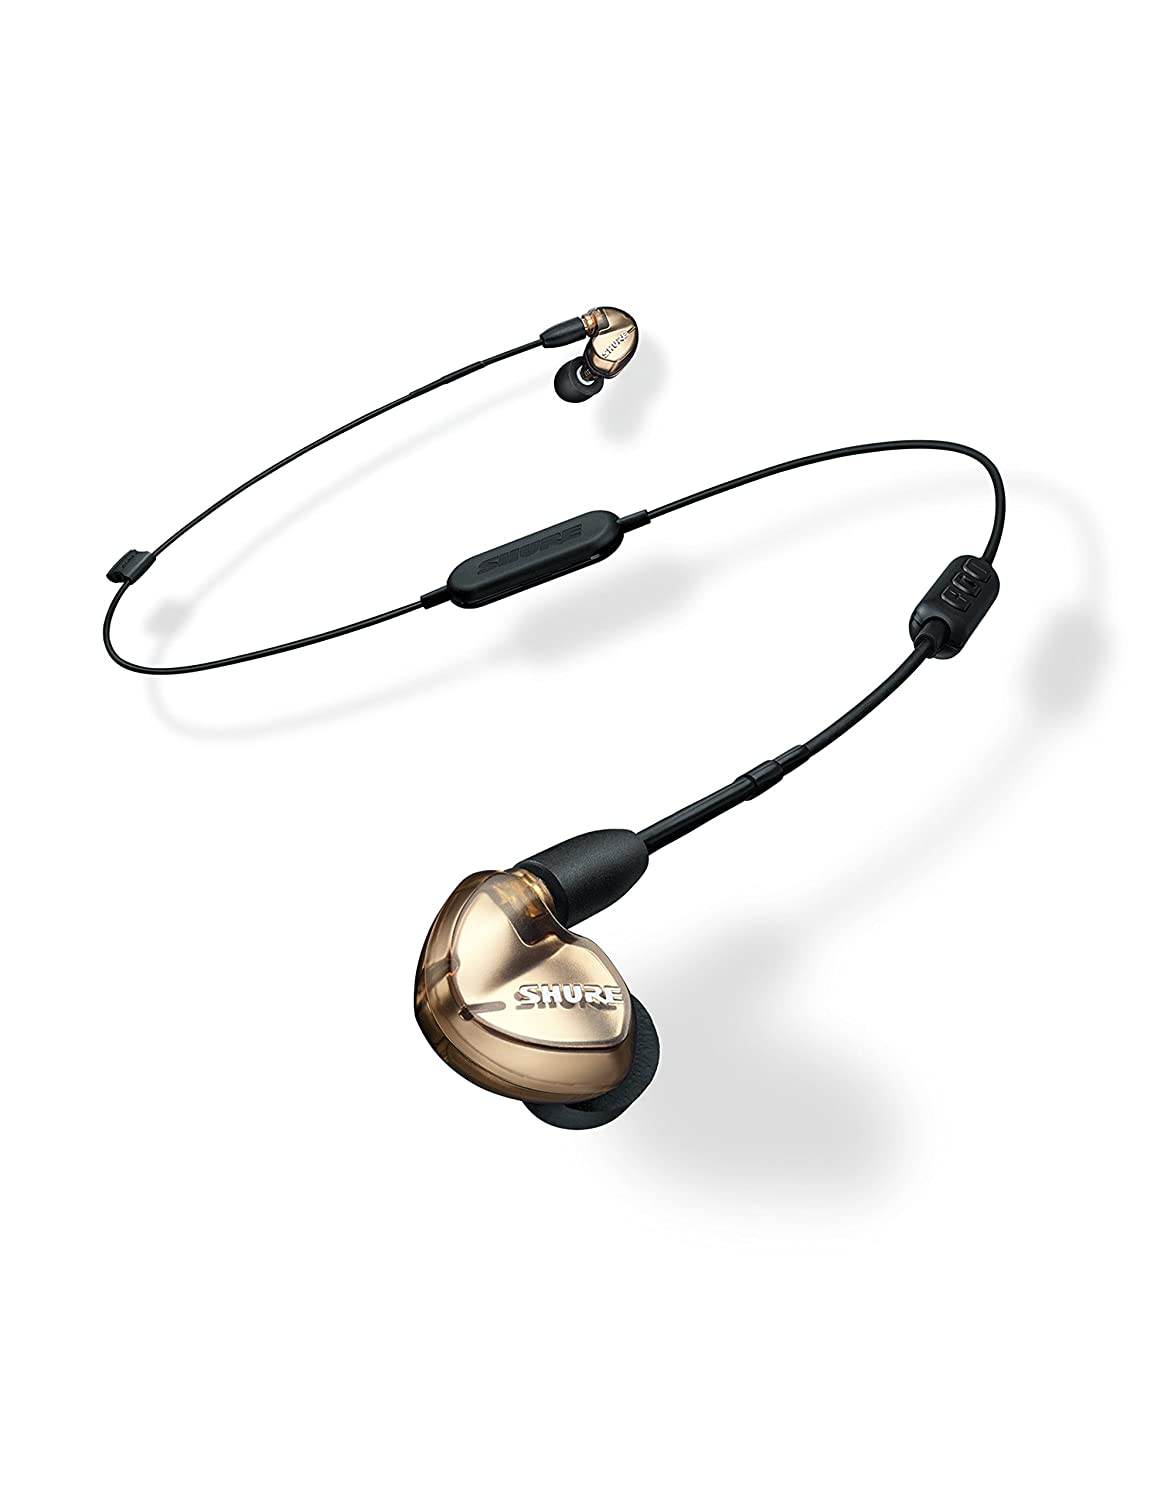 Shure SE535-V+BT1 Wireless Sound Isolating Earphones with